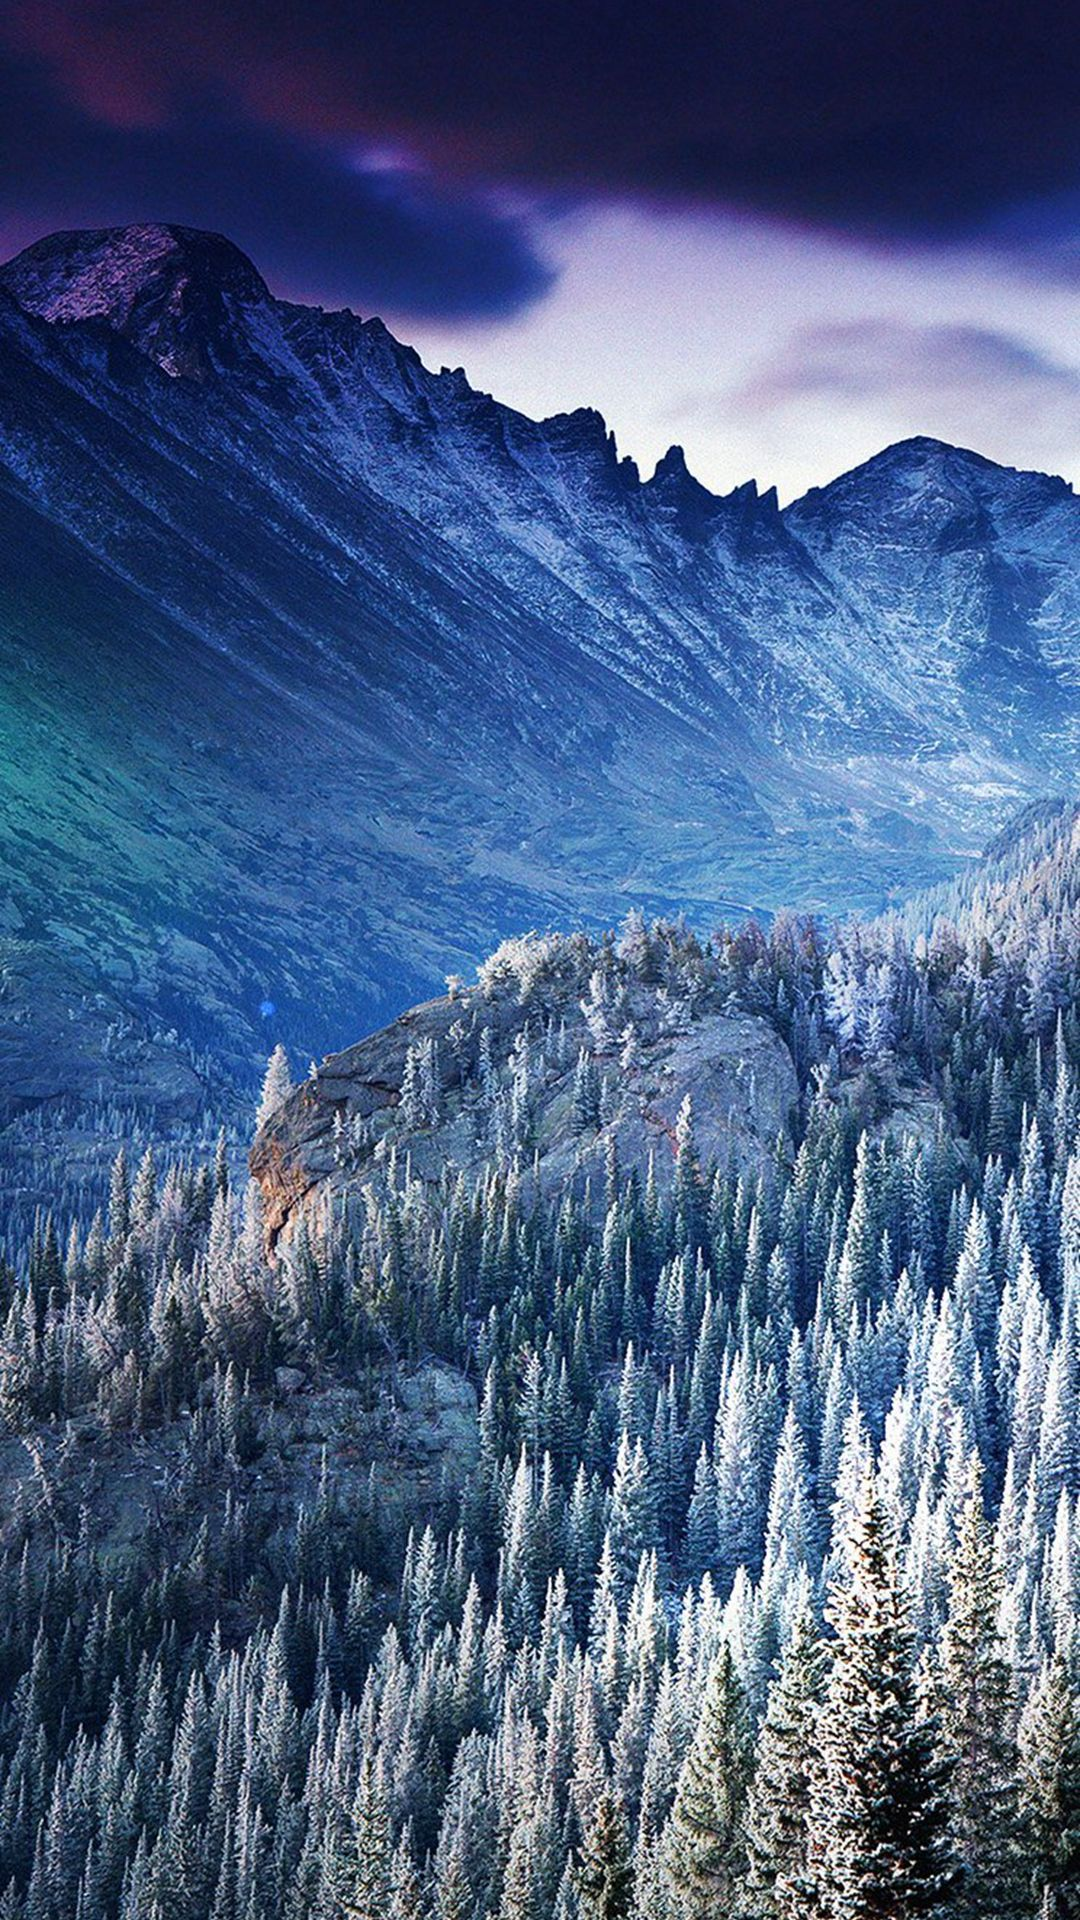 Winter Mountain Blue Woods Tree Nature Cold Iphone 6 Wallpaper Download Ipho Christmas Wallpaper Backgrounds Iphone Wallpaper Winter Christmas Wallpaper Free